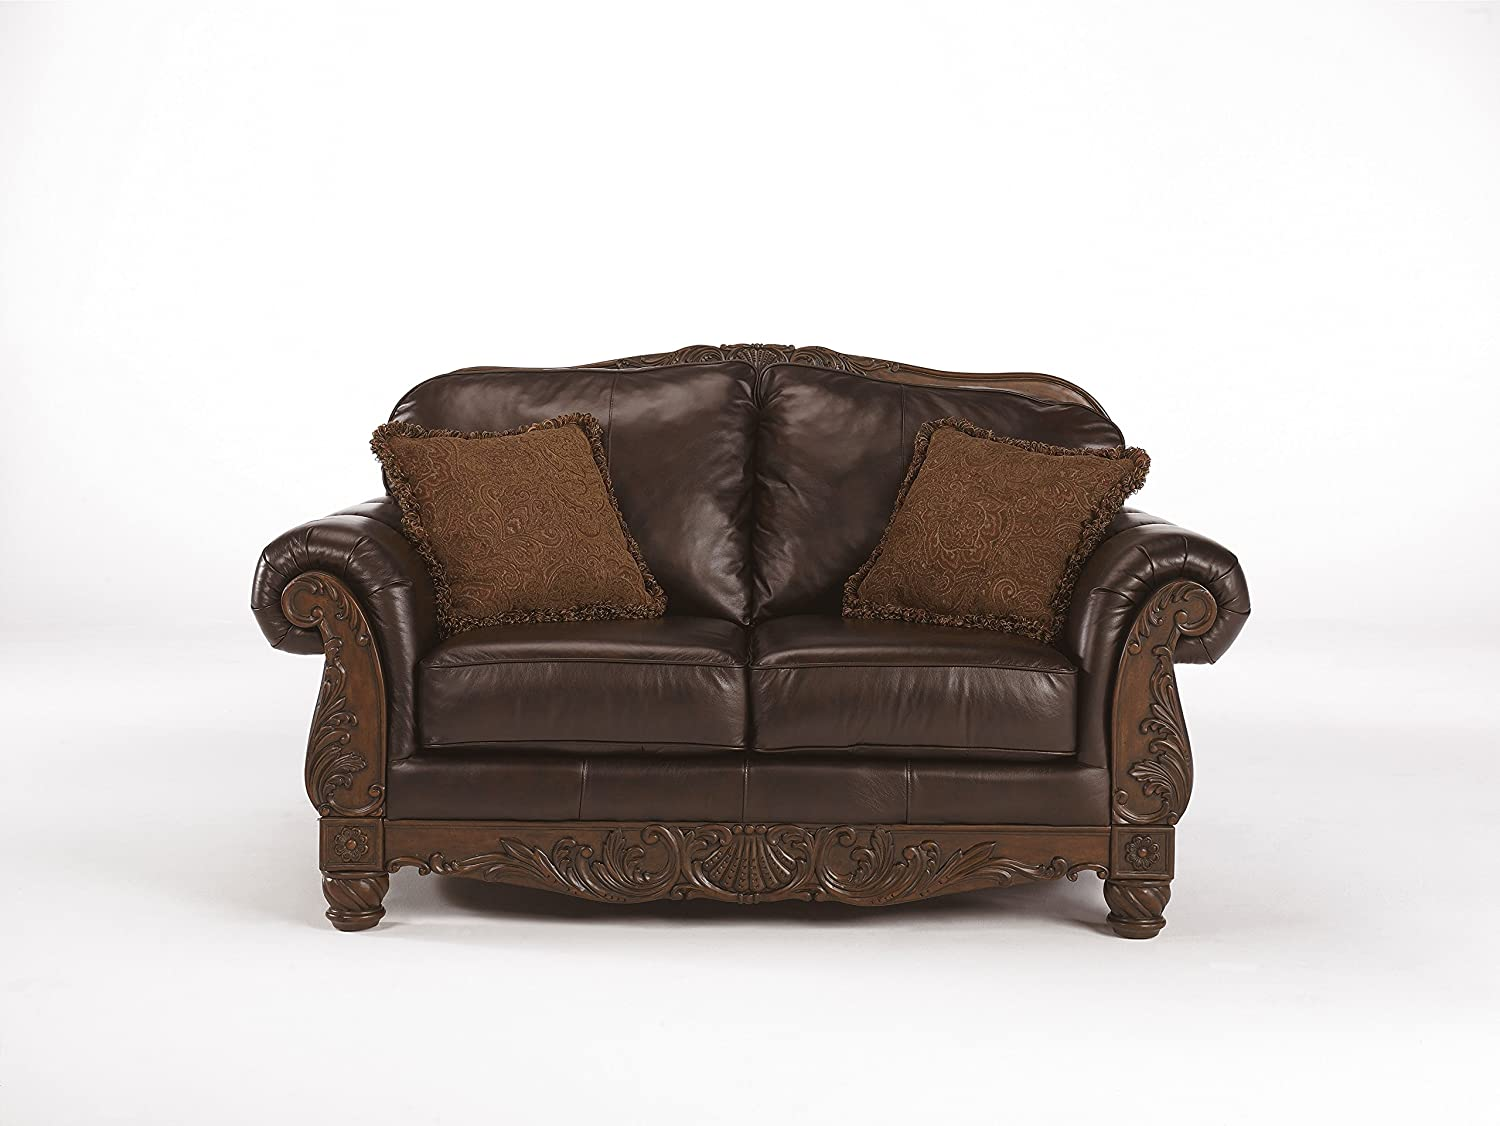 North Shore Top-grain Leather Dark Brown Color Old World Loveseat